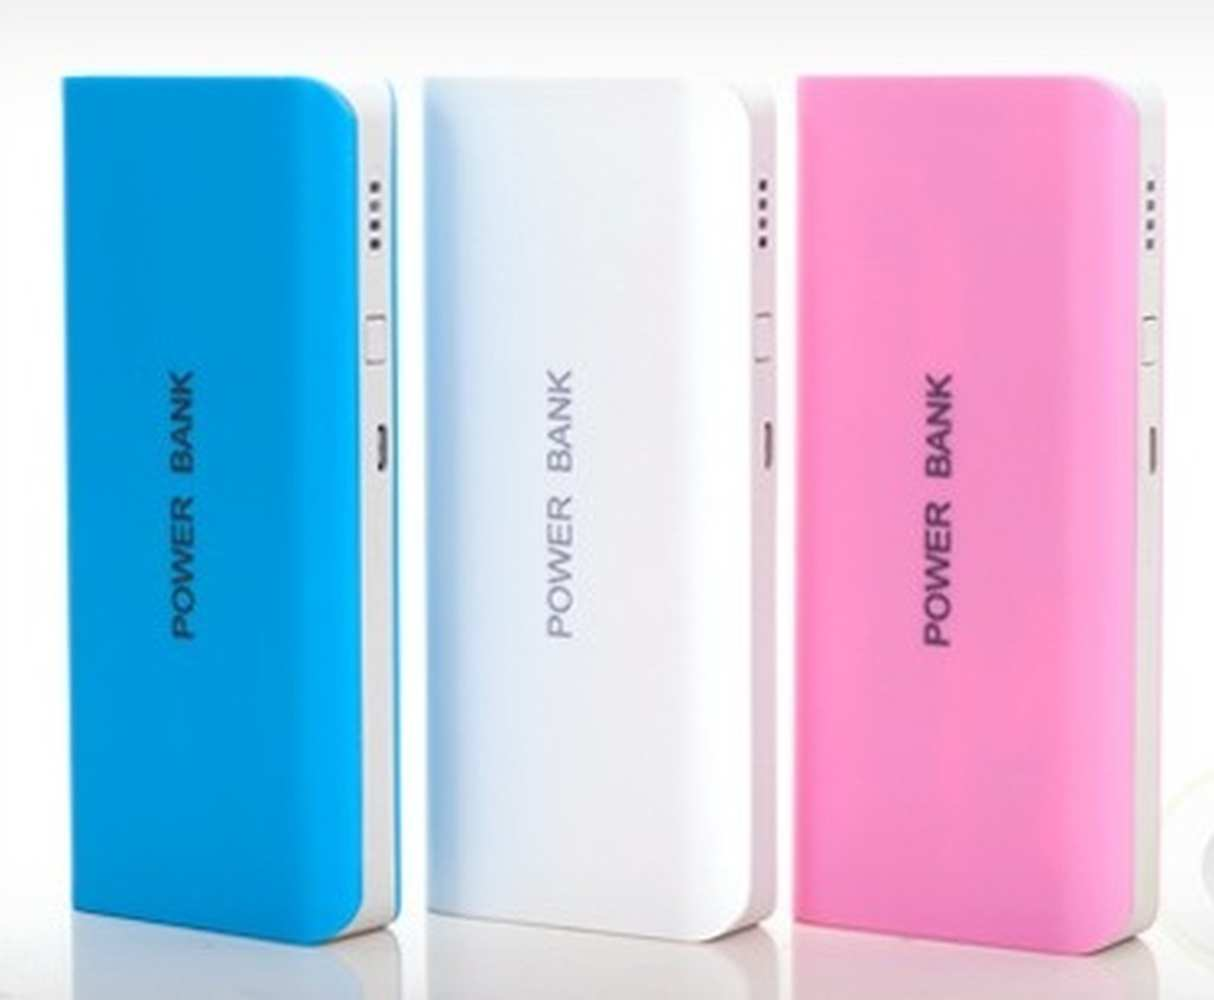 10000mAh Power Bank Portable Charger for Samsung Galaxy J5